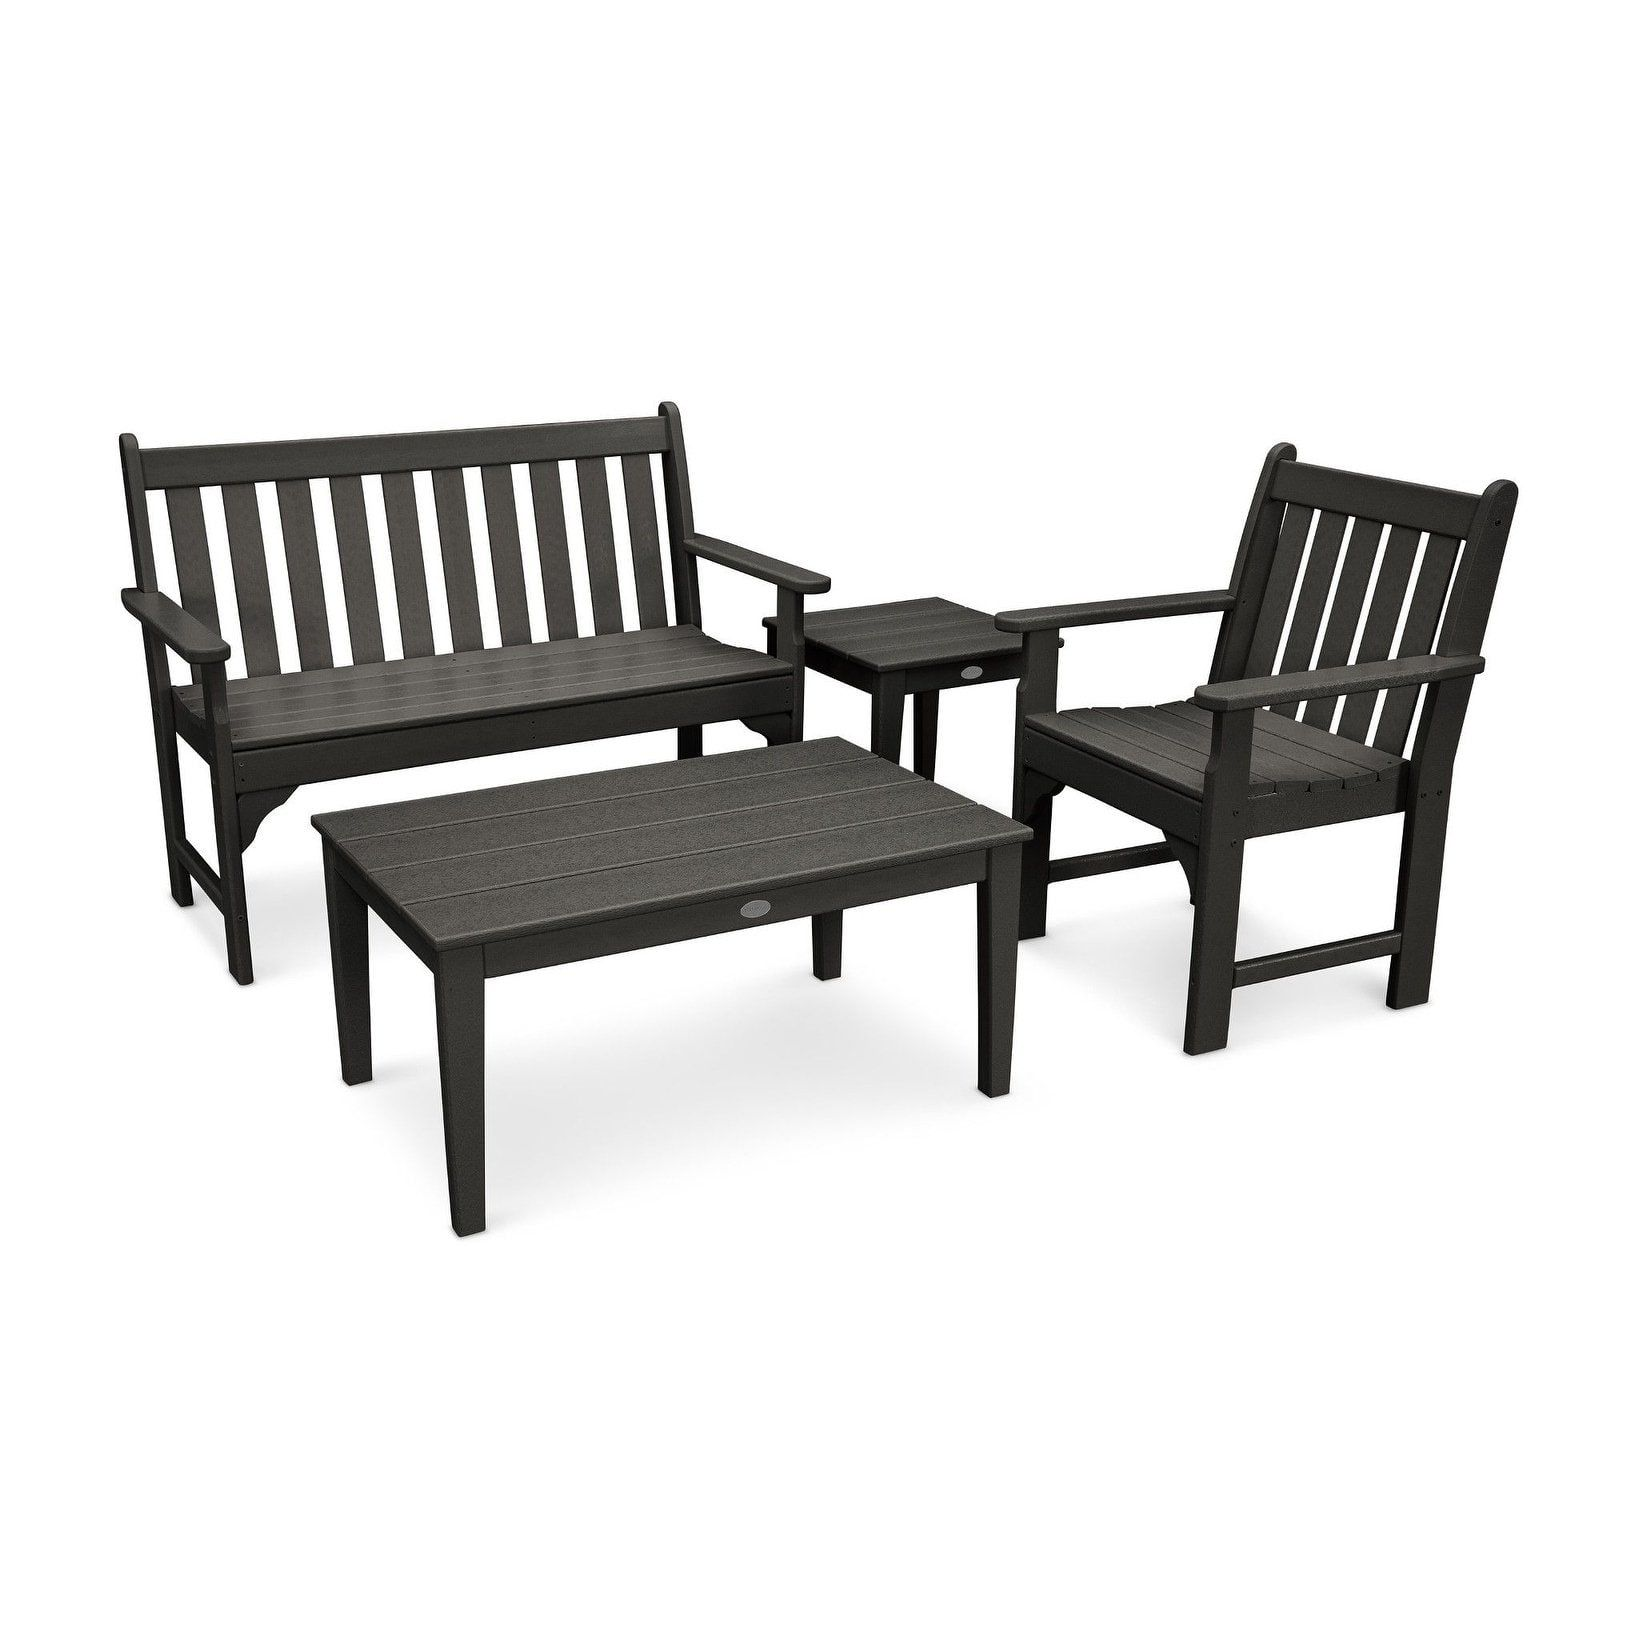 Cool Polywood Vineyard 4 Piece Outdoor Bench Chair And Table Ocoug Best Dining Table And Chair Ideas Images Ocougorg